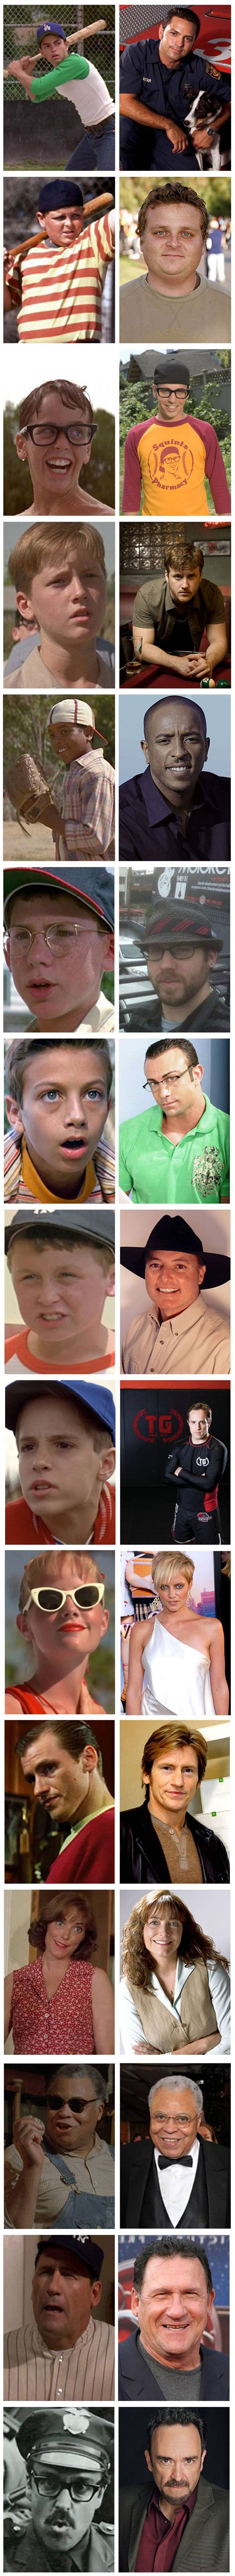 The Sandlot: Then and Now. Wow, Squints is the cutest grown-up of them all! My favorite movie as a kid!